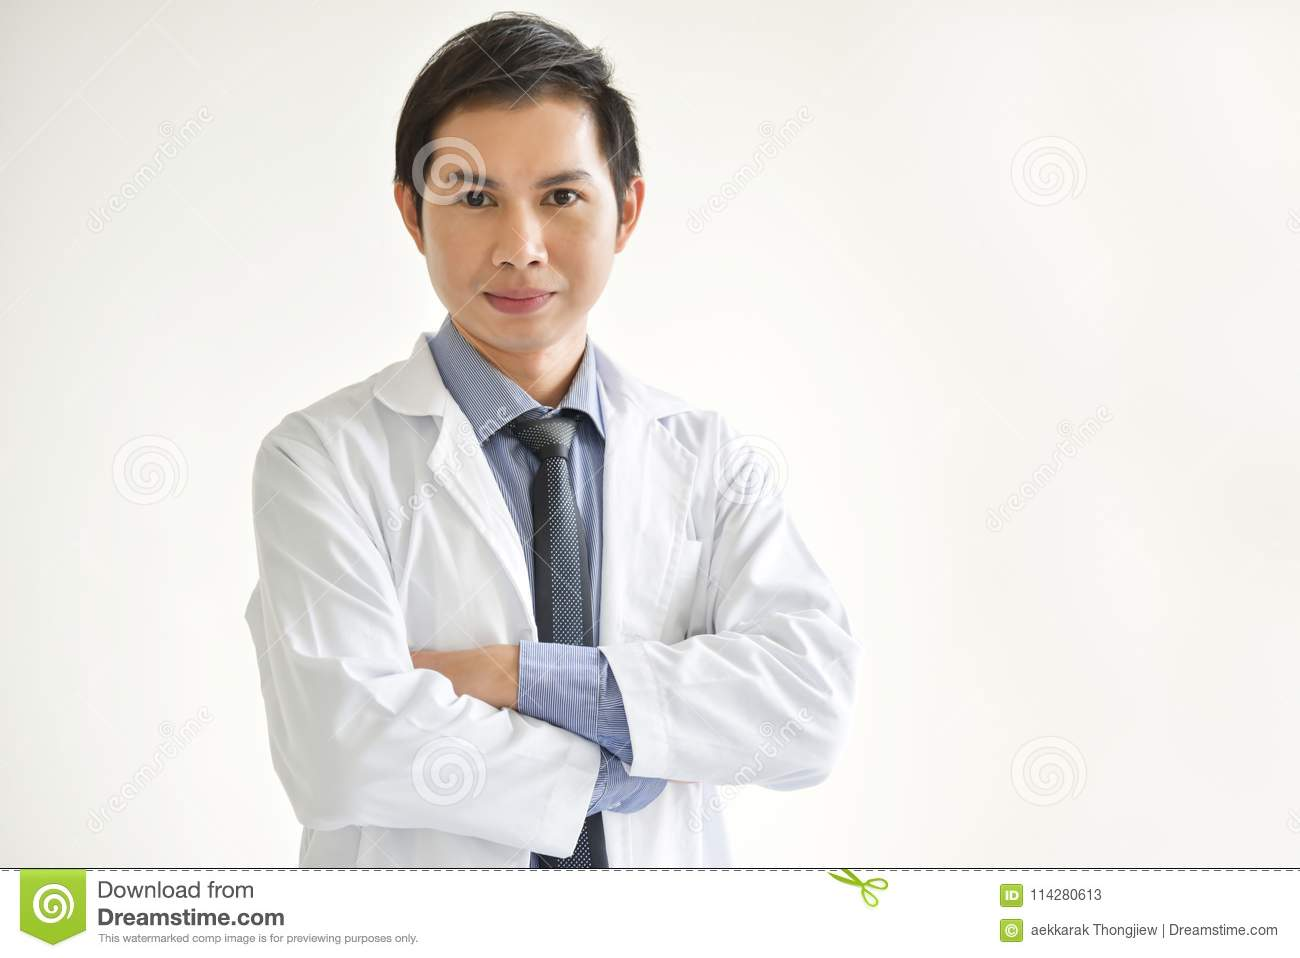 Final, Asian male doctor opinion you